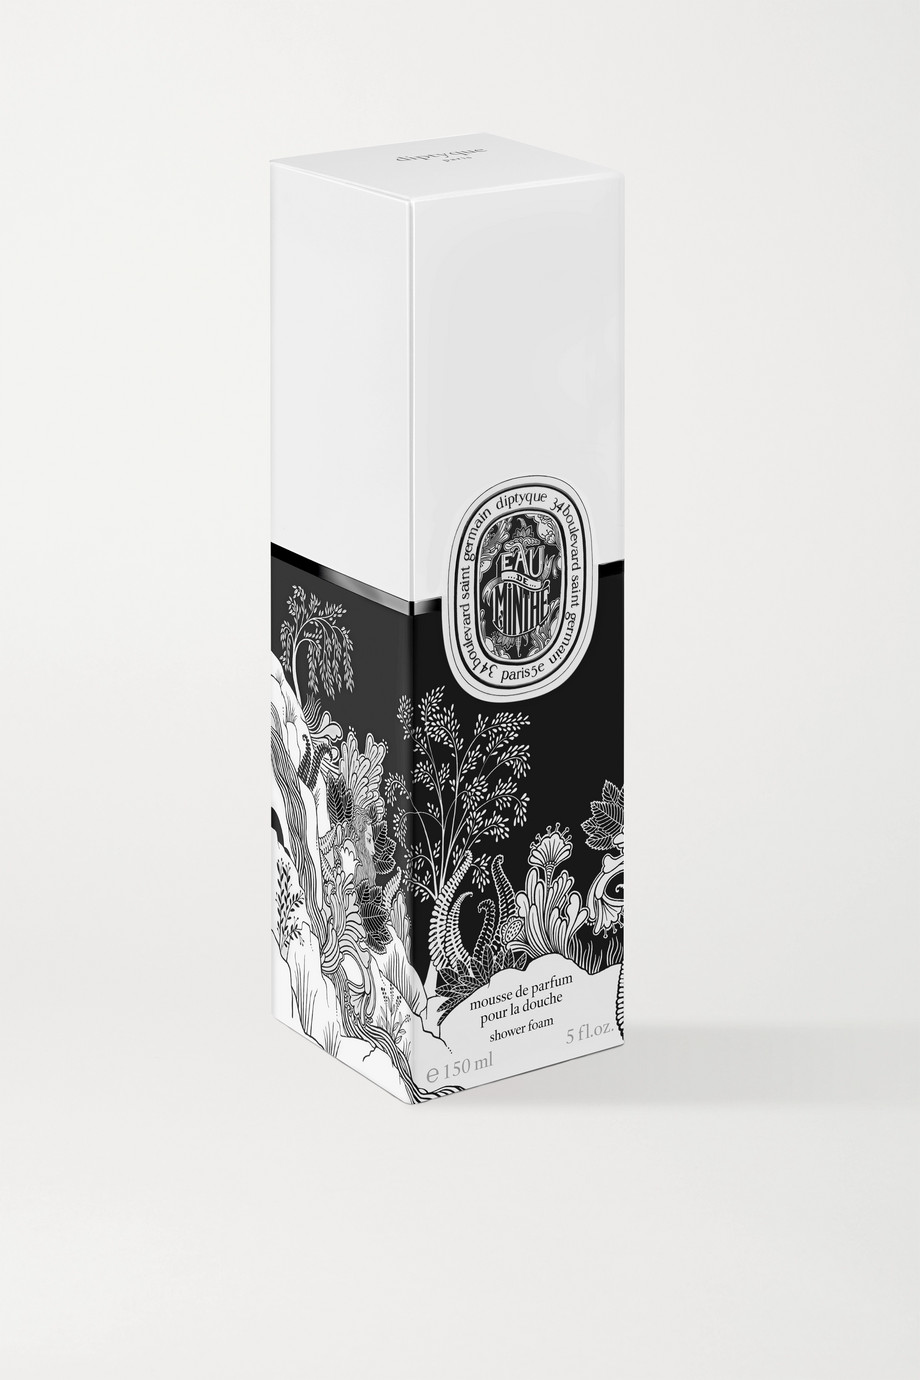 Diptyque Eau de Minthe Shower Foam, 150 ml – Duschgel